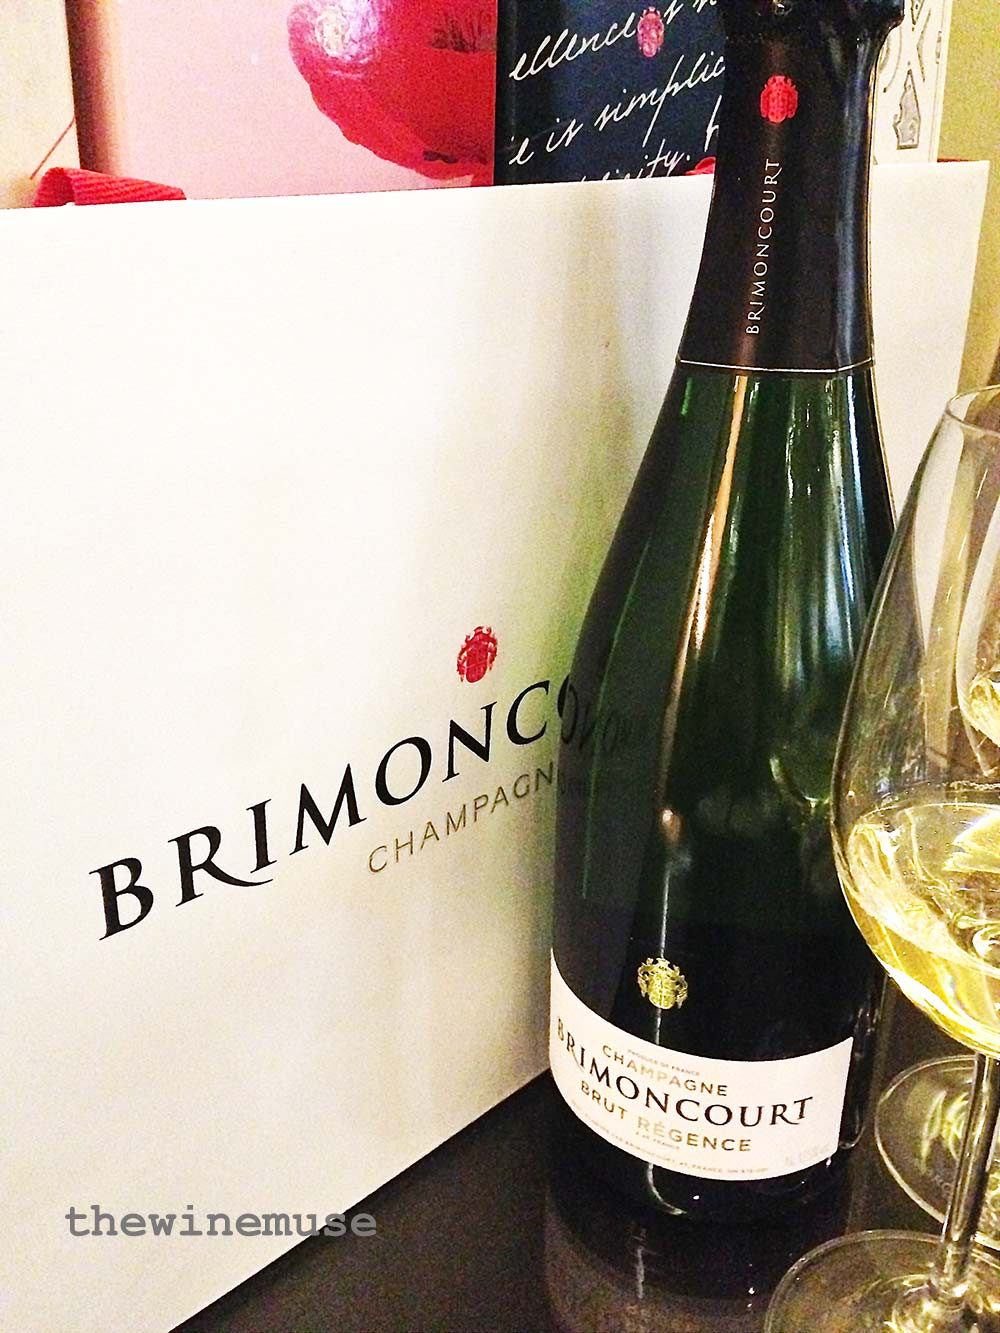 Brimoncourt: France's new Champagne House has its roots in history